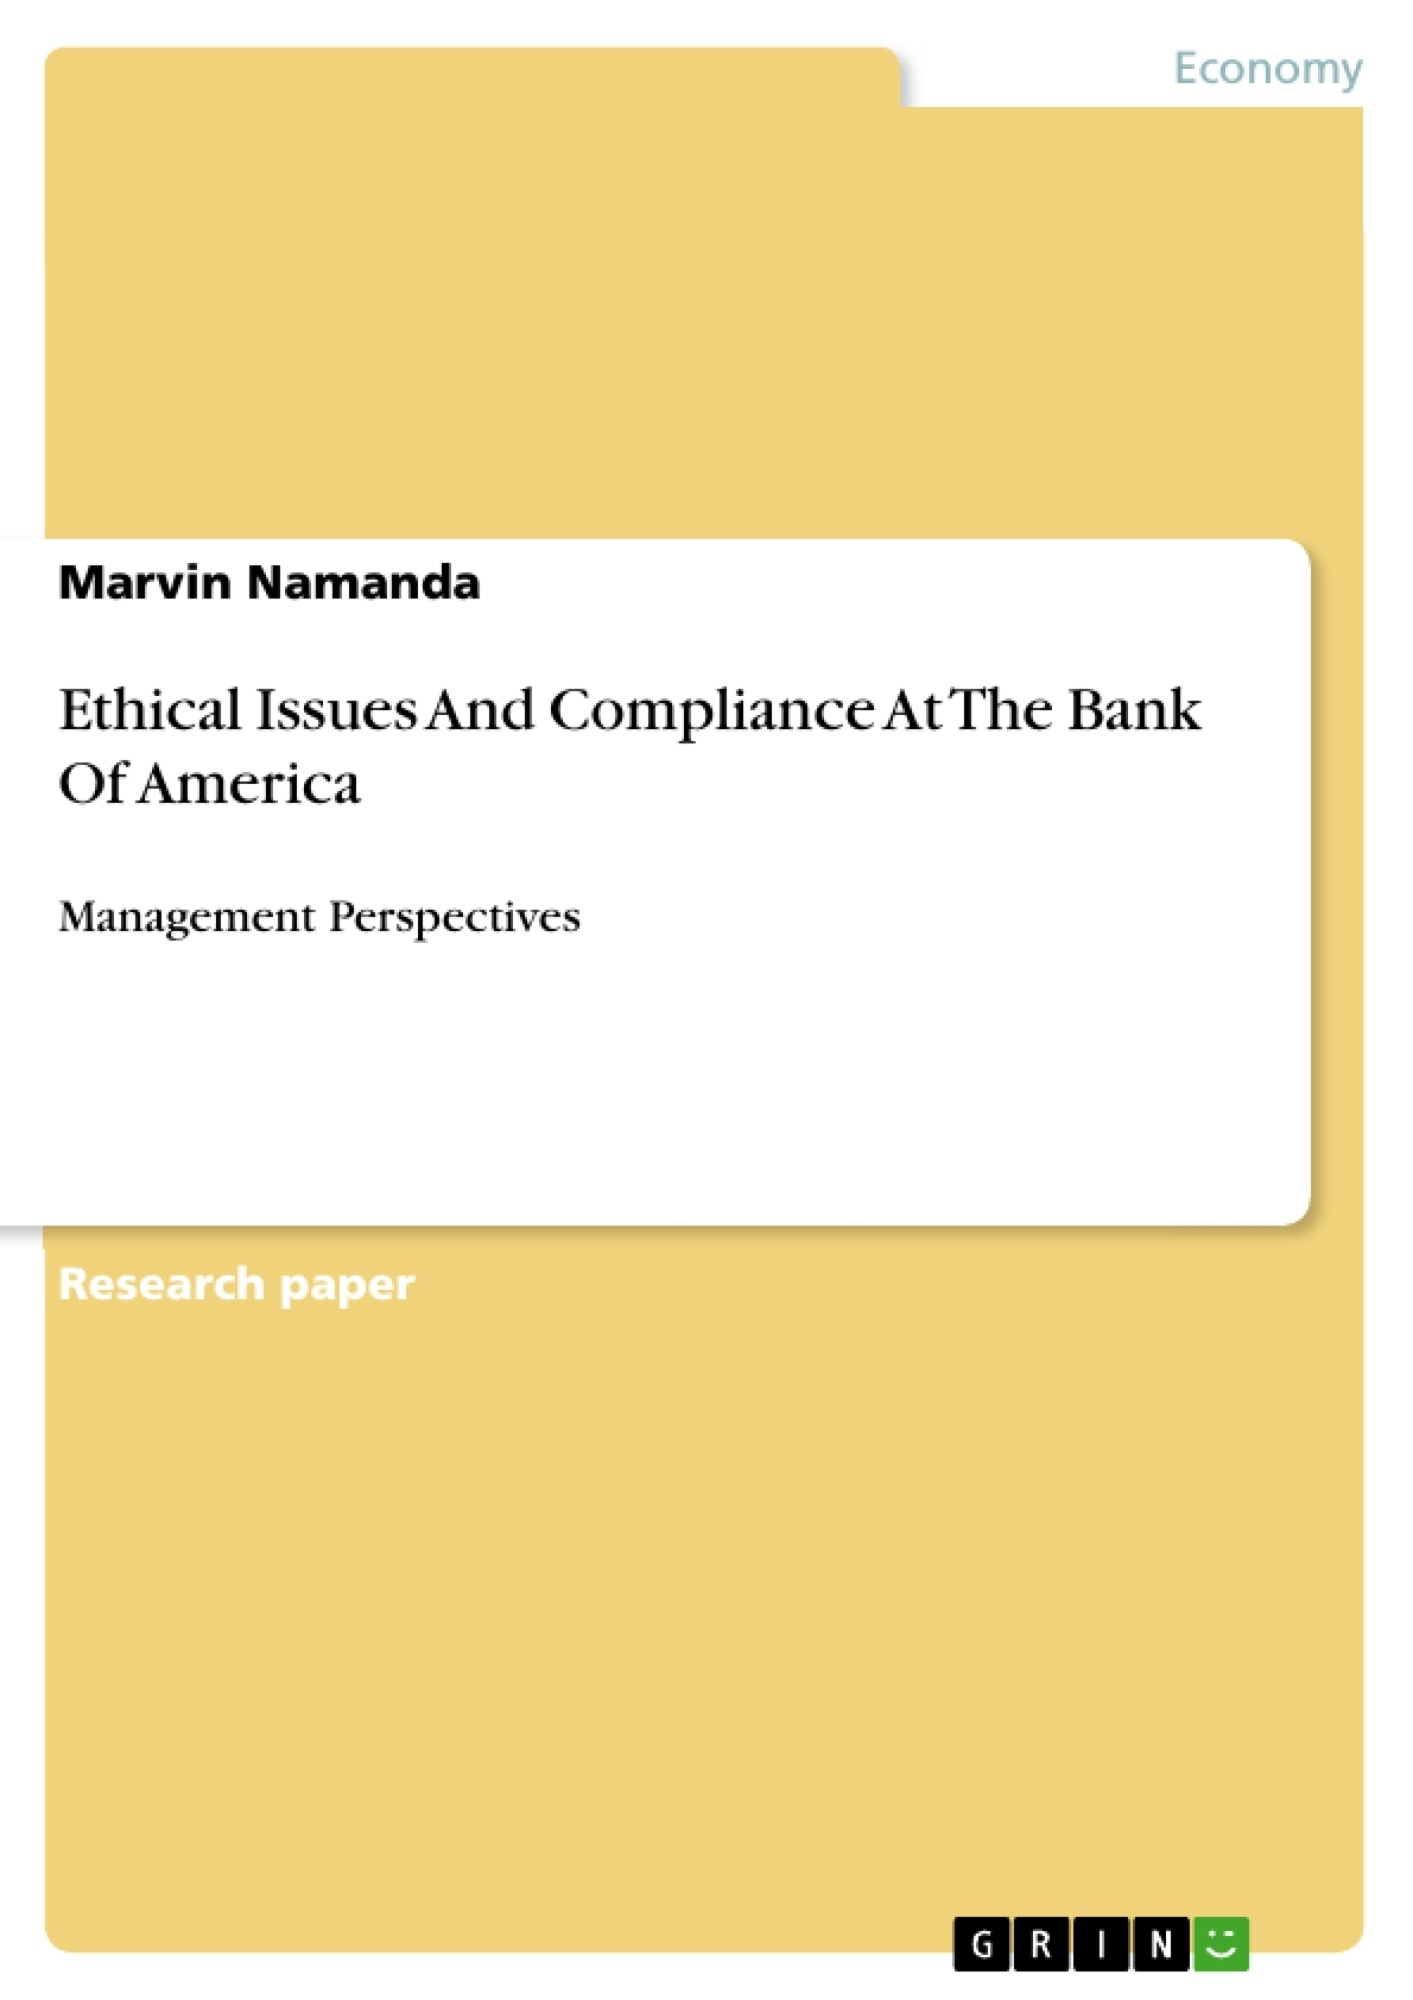 corporate compliance research paper